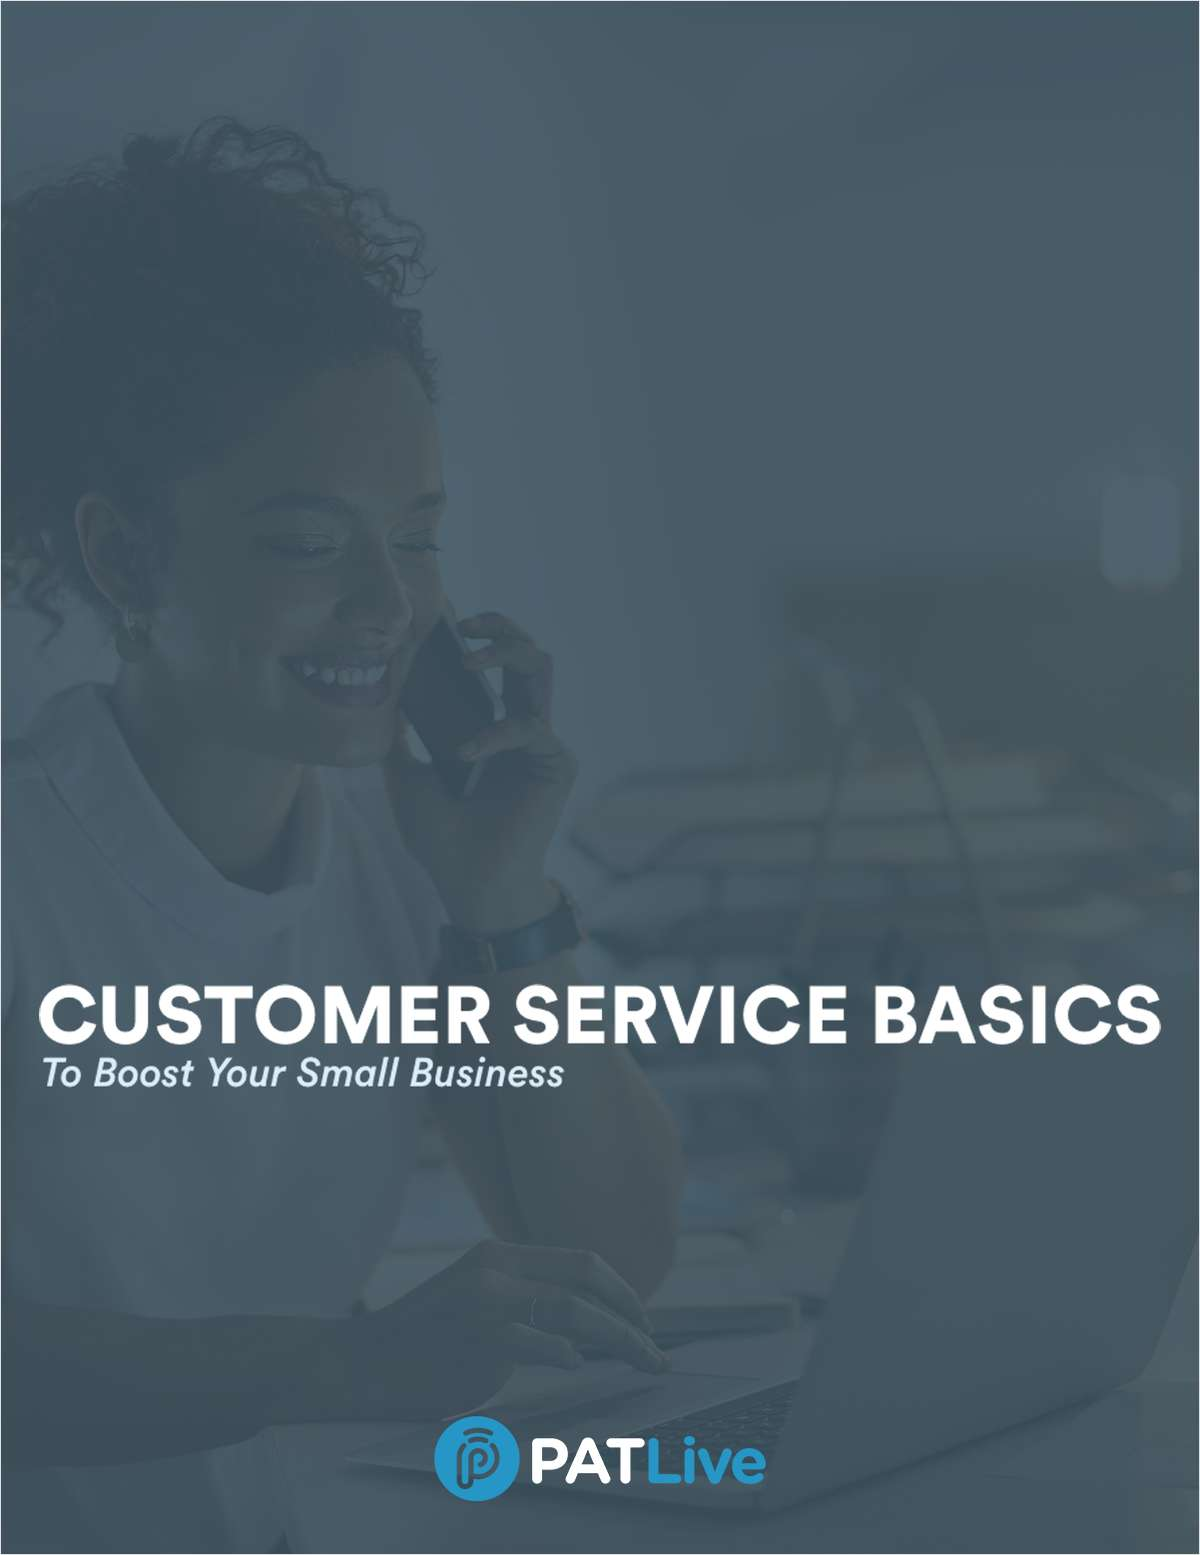 Customer Service Basics to Boost Your Small Business